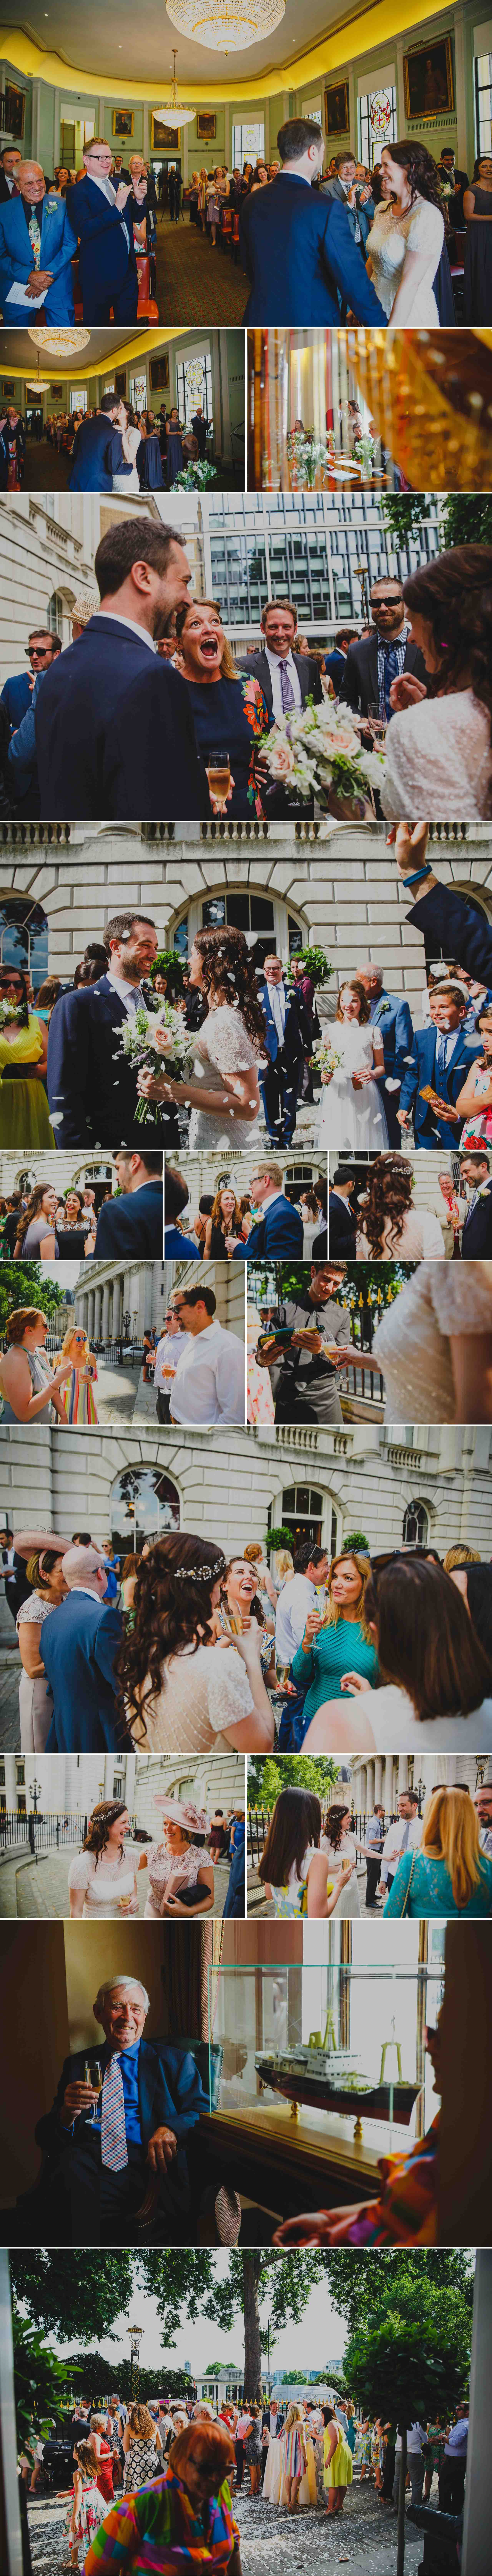 Wedding celebrations at Trinity House in London